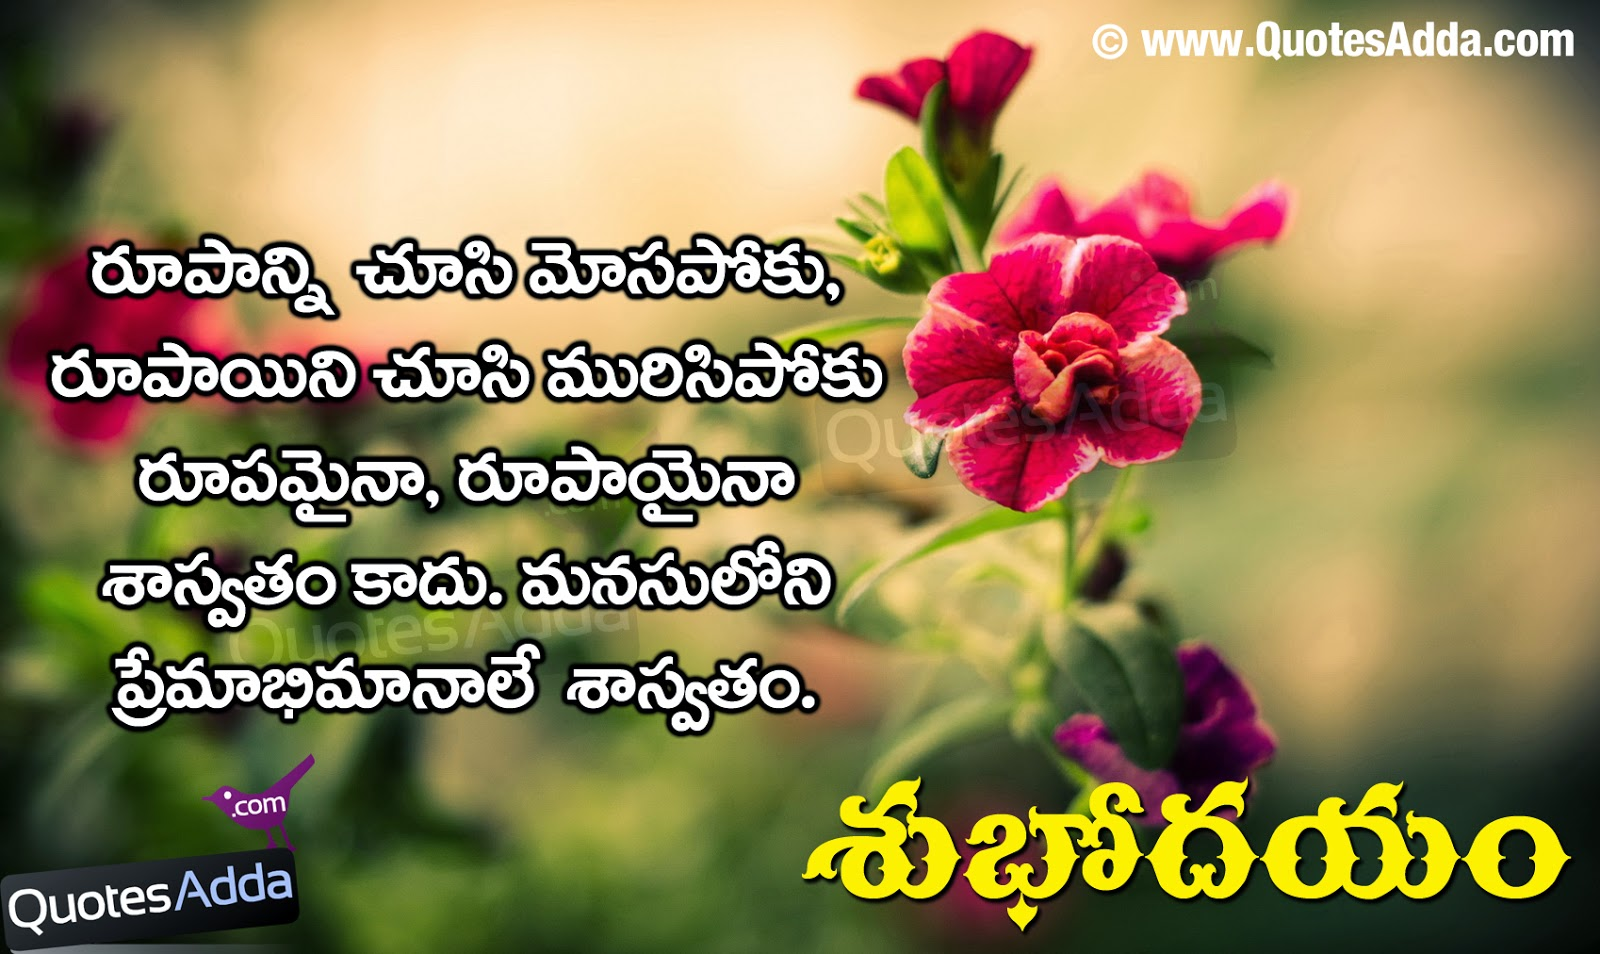 Imágenes De Good Morning Quotes In Telugu With Flowers